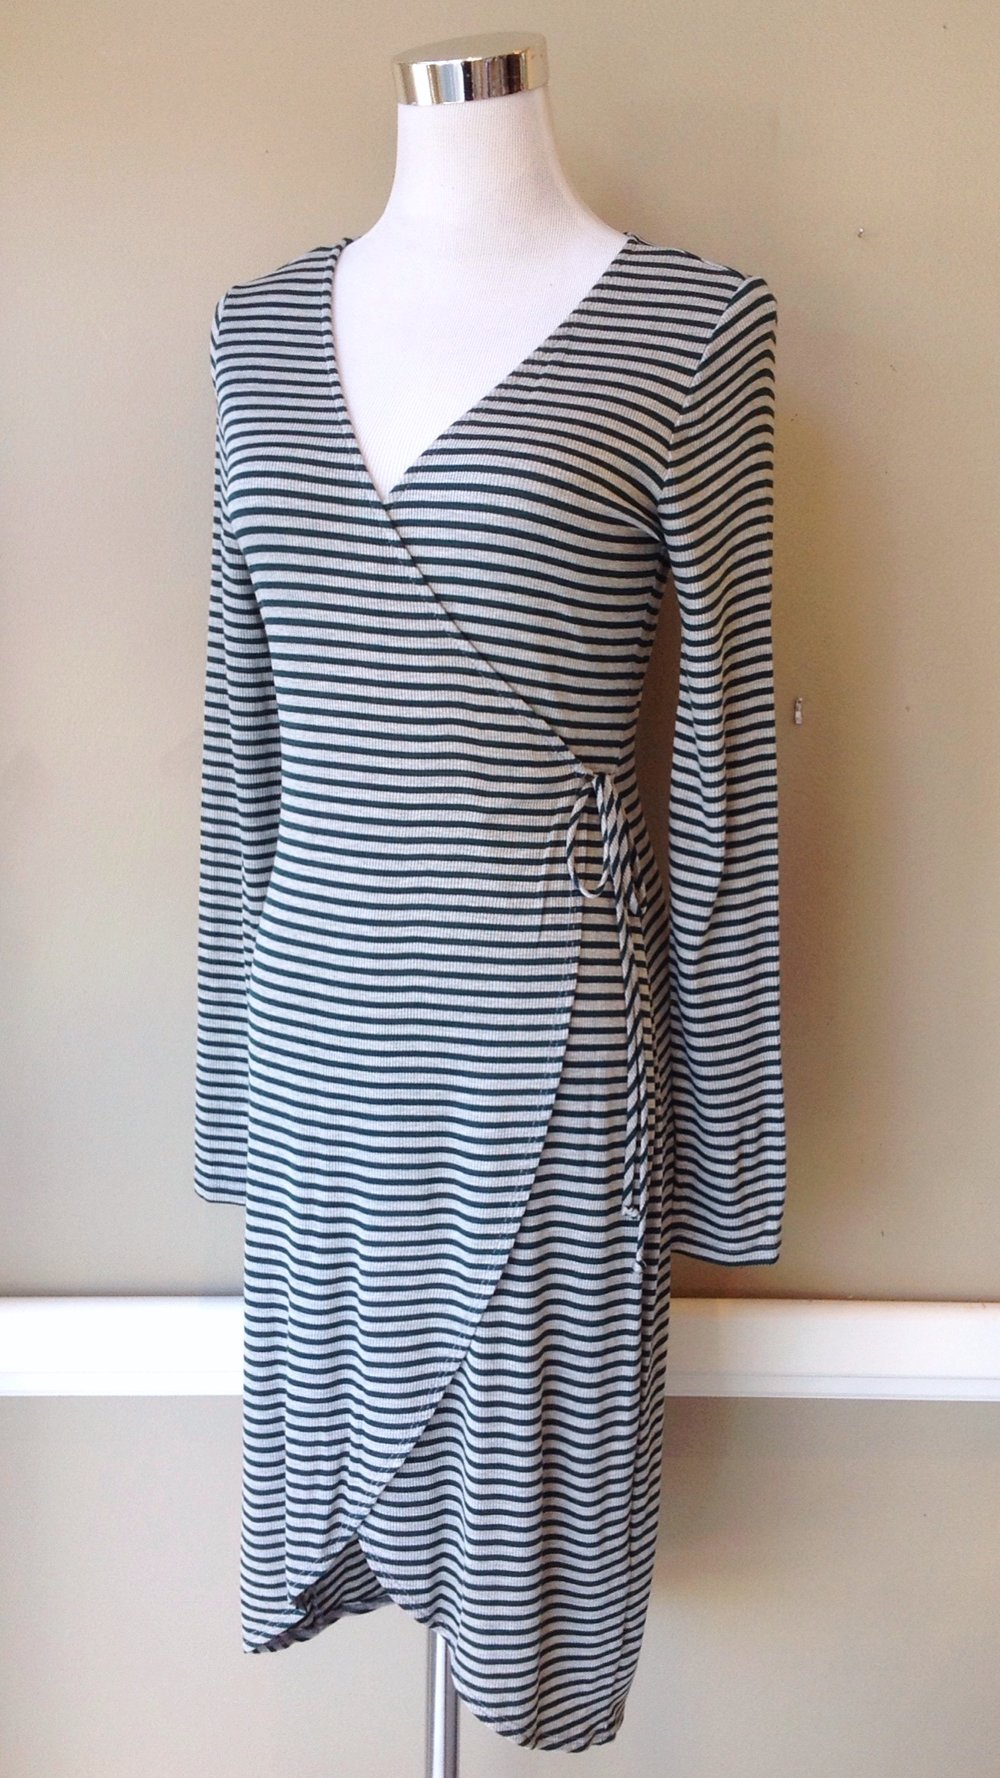 Rib knit wrap dress win grey/hunter stripe, $42